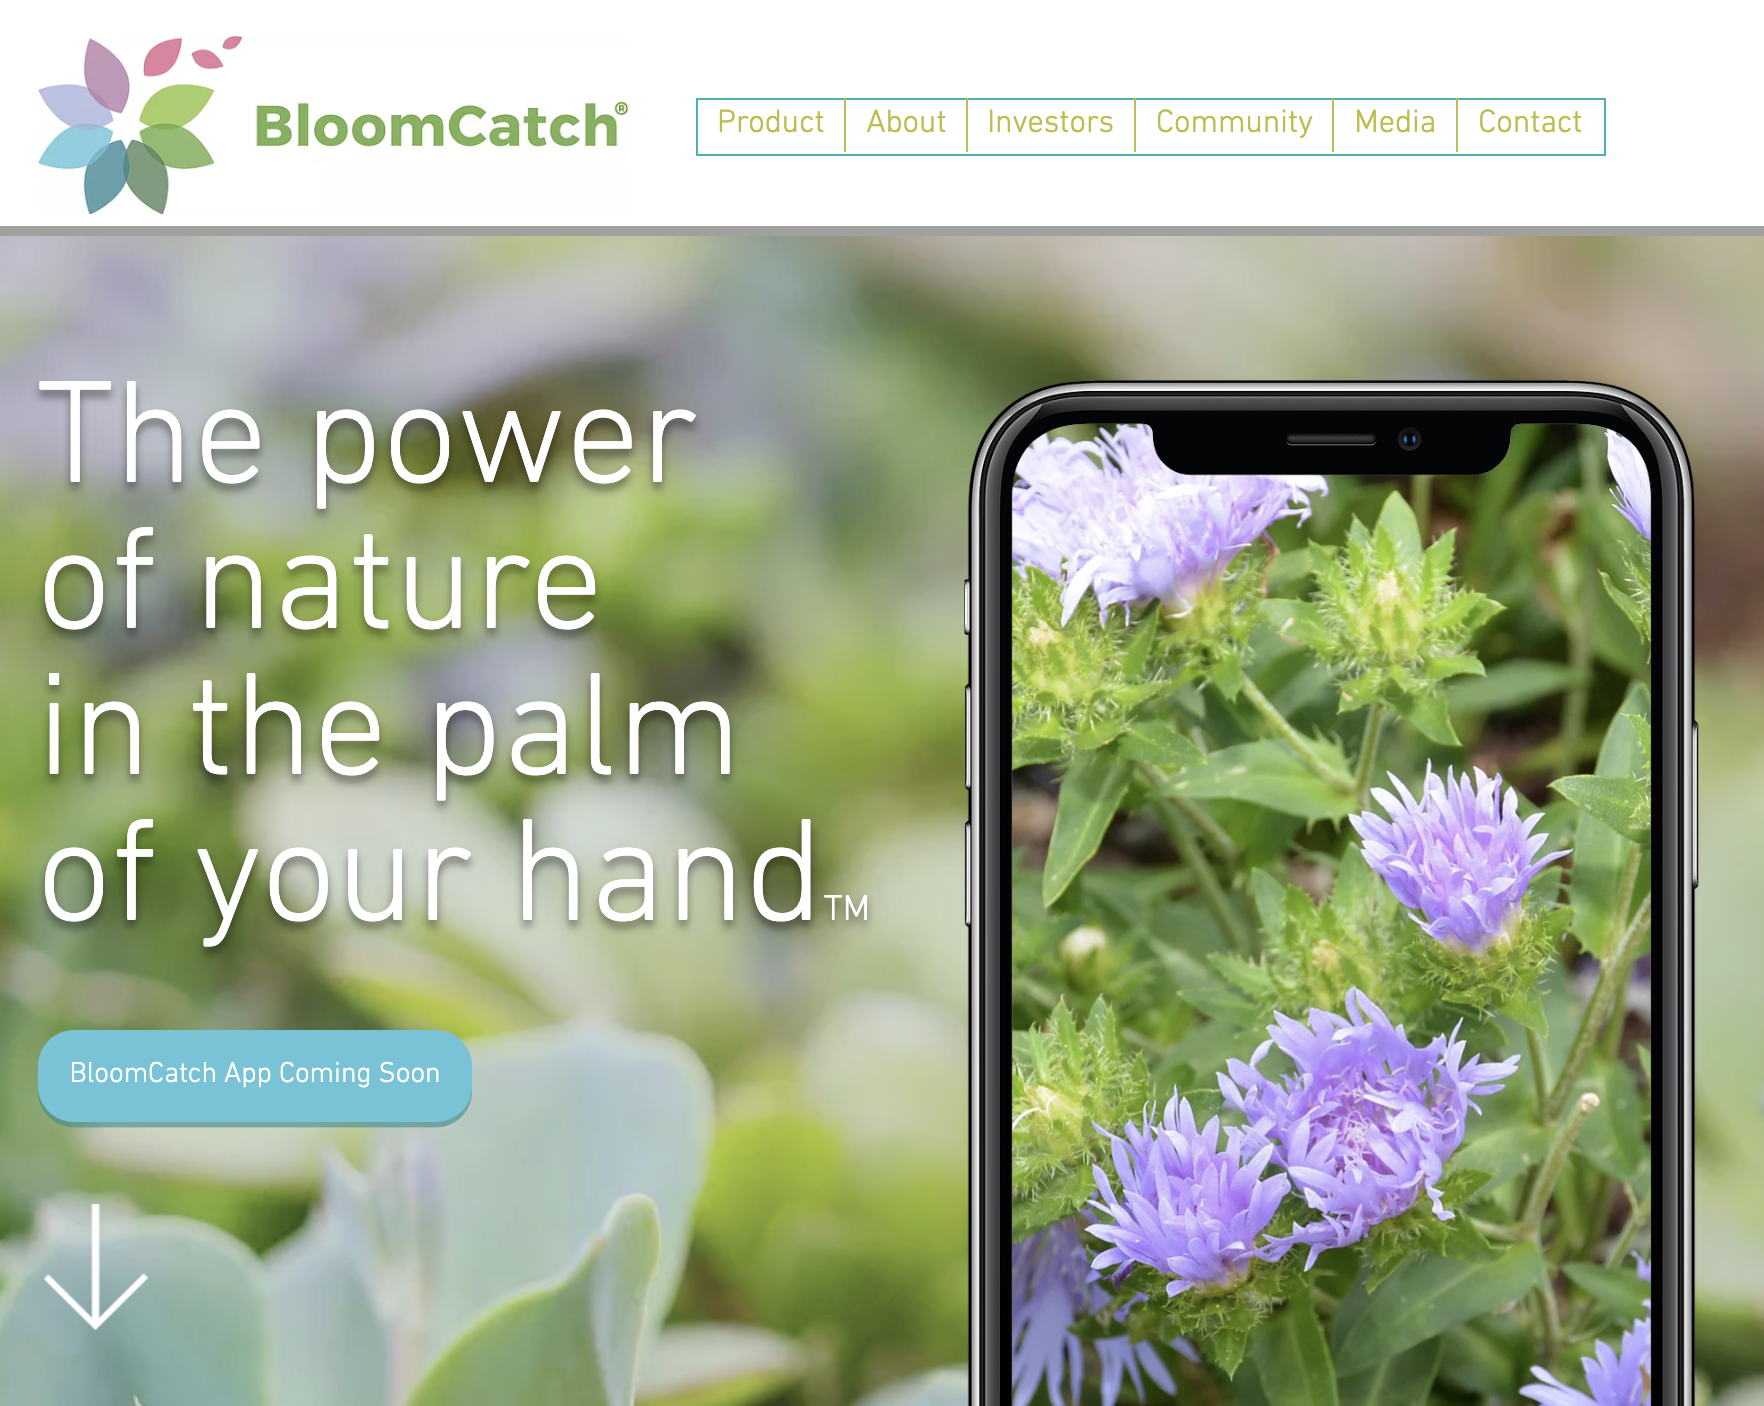 BloomCatch